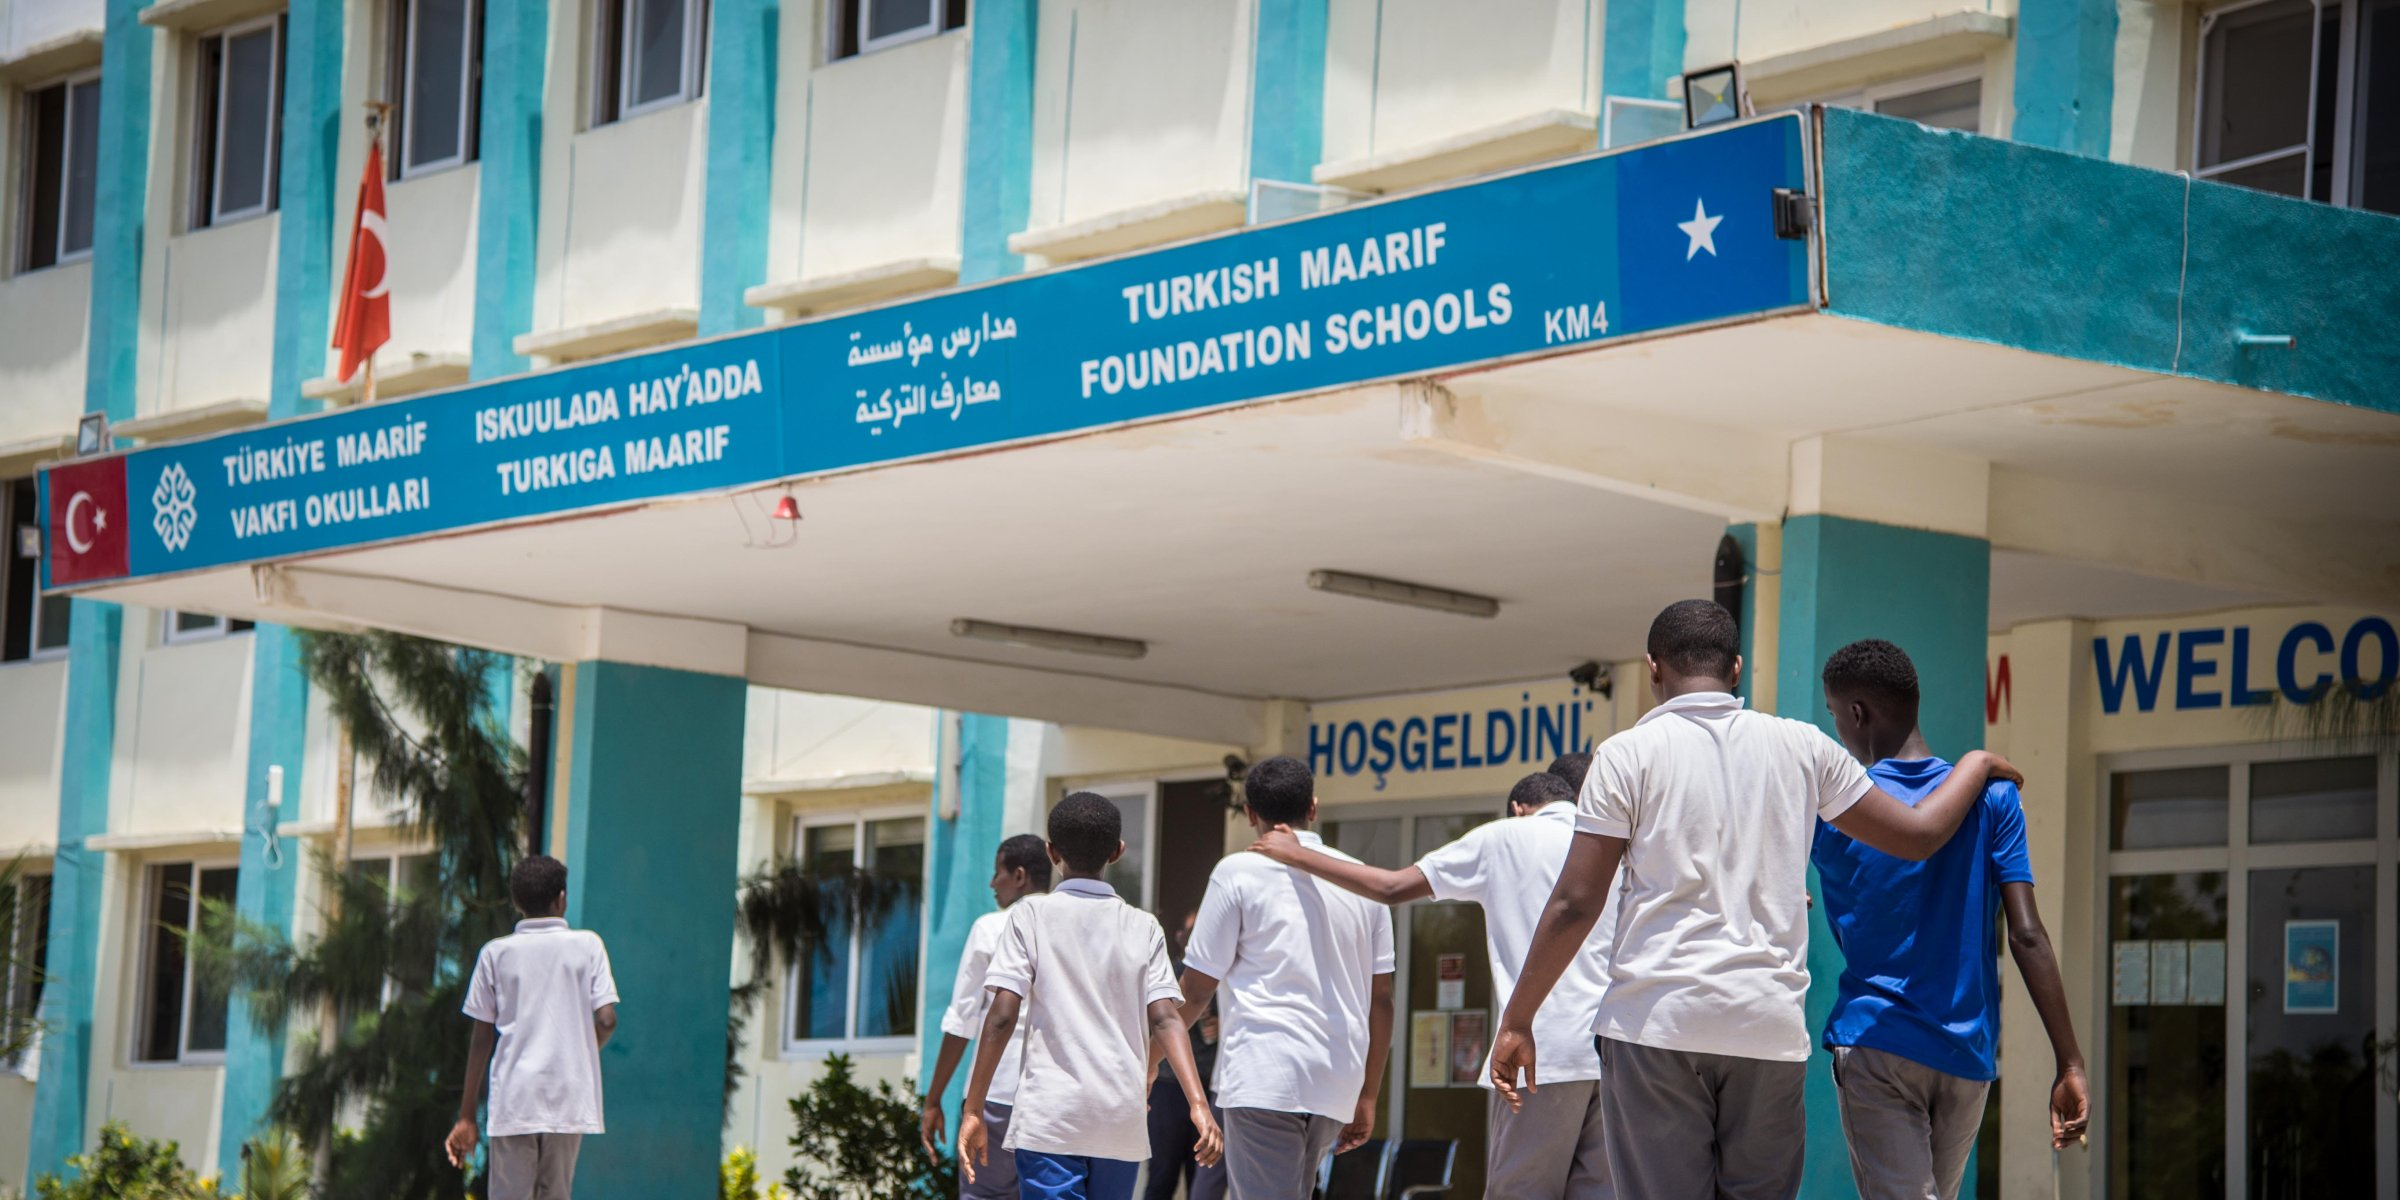 Civilians injured in explosion near Turkish school in Migadishu